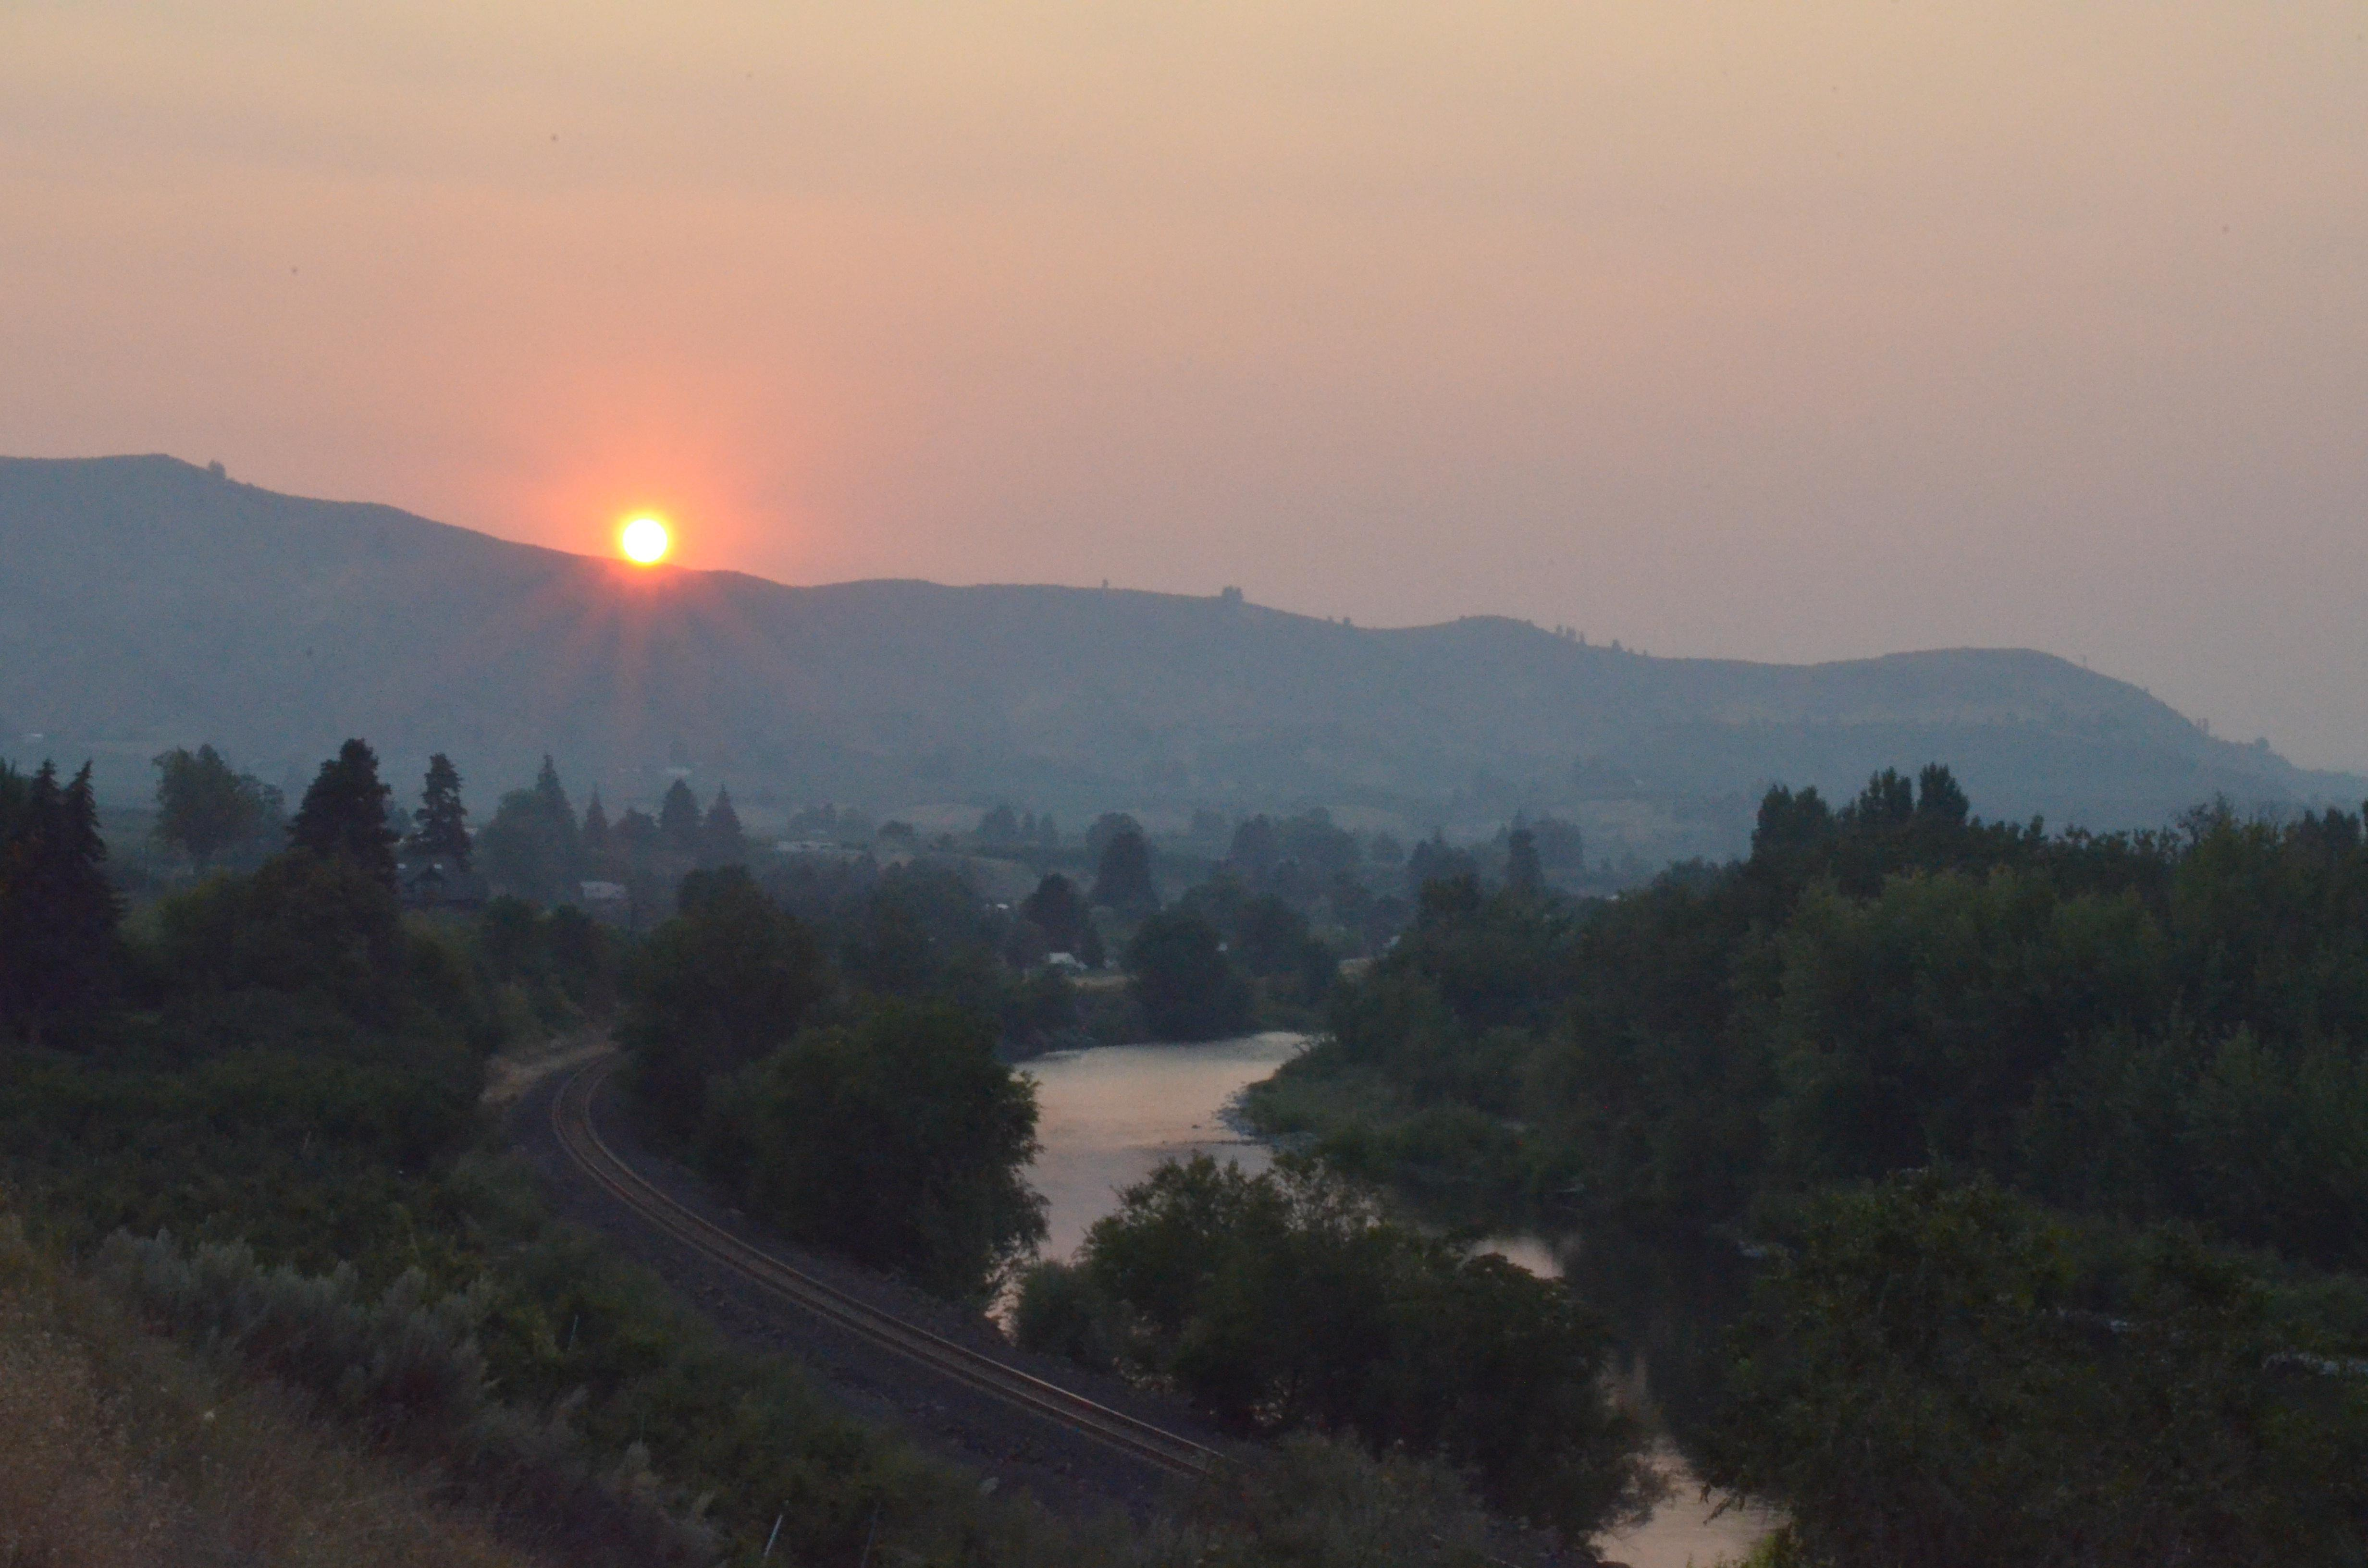 Hazy skies caused by wildfire smoke are creating increasingly common scenes like this in Eastern Washington' above the Wenatchee River in August, 2018.